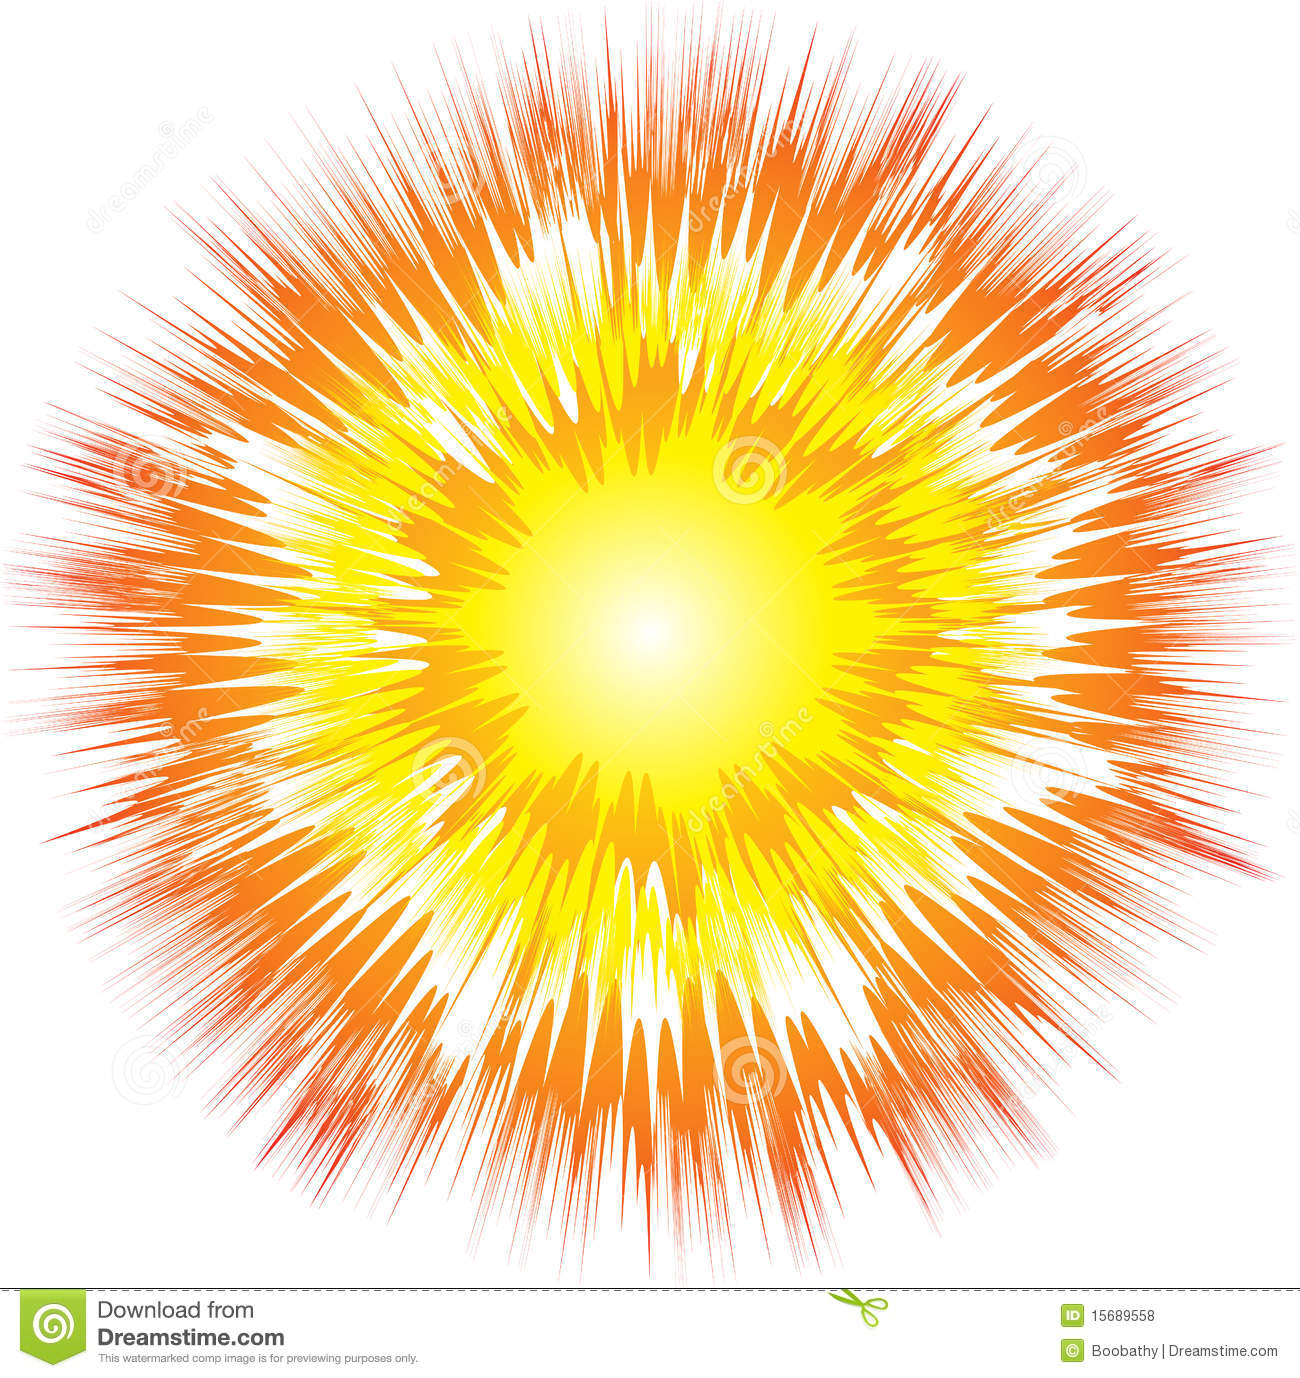 clipart explosion download - photo #31